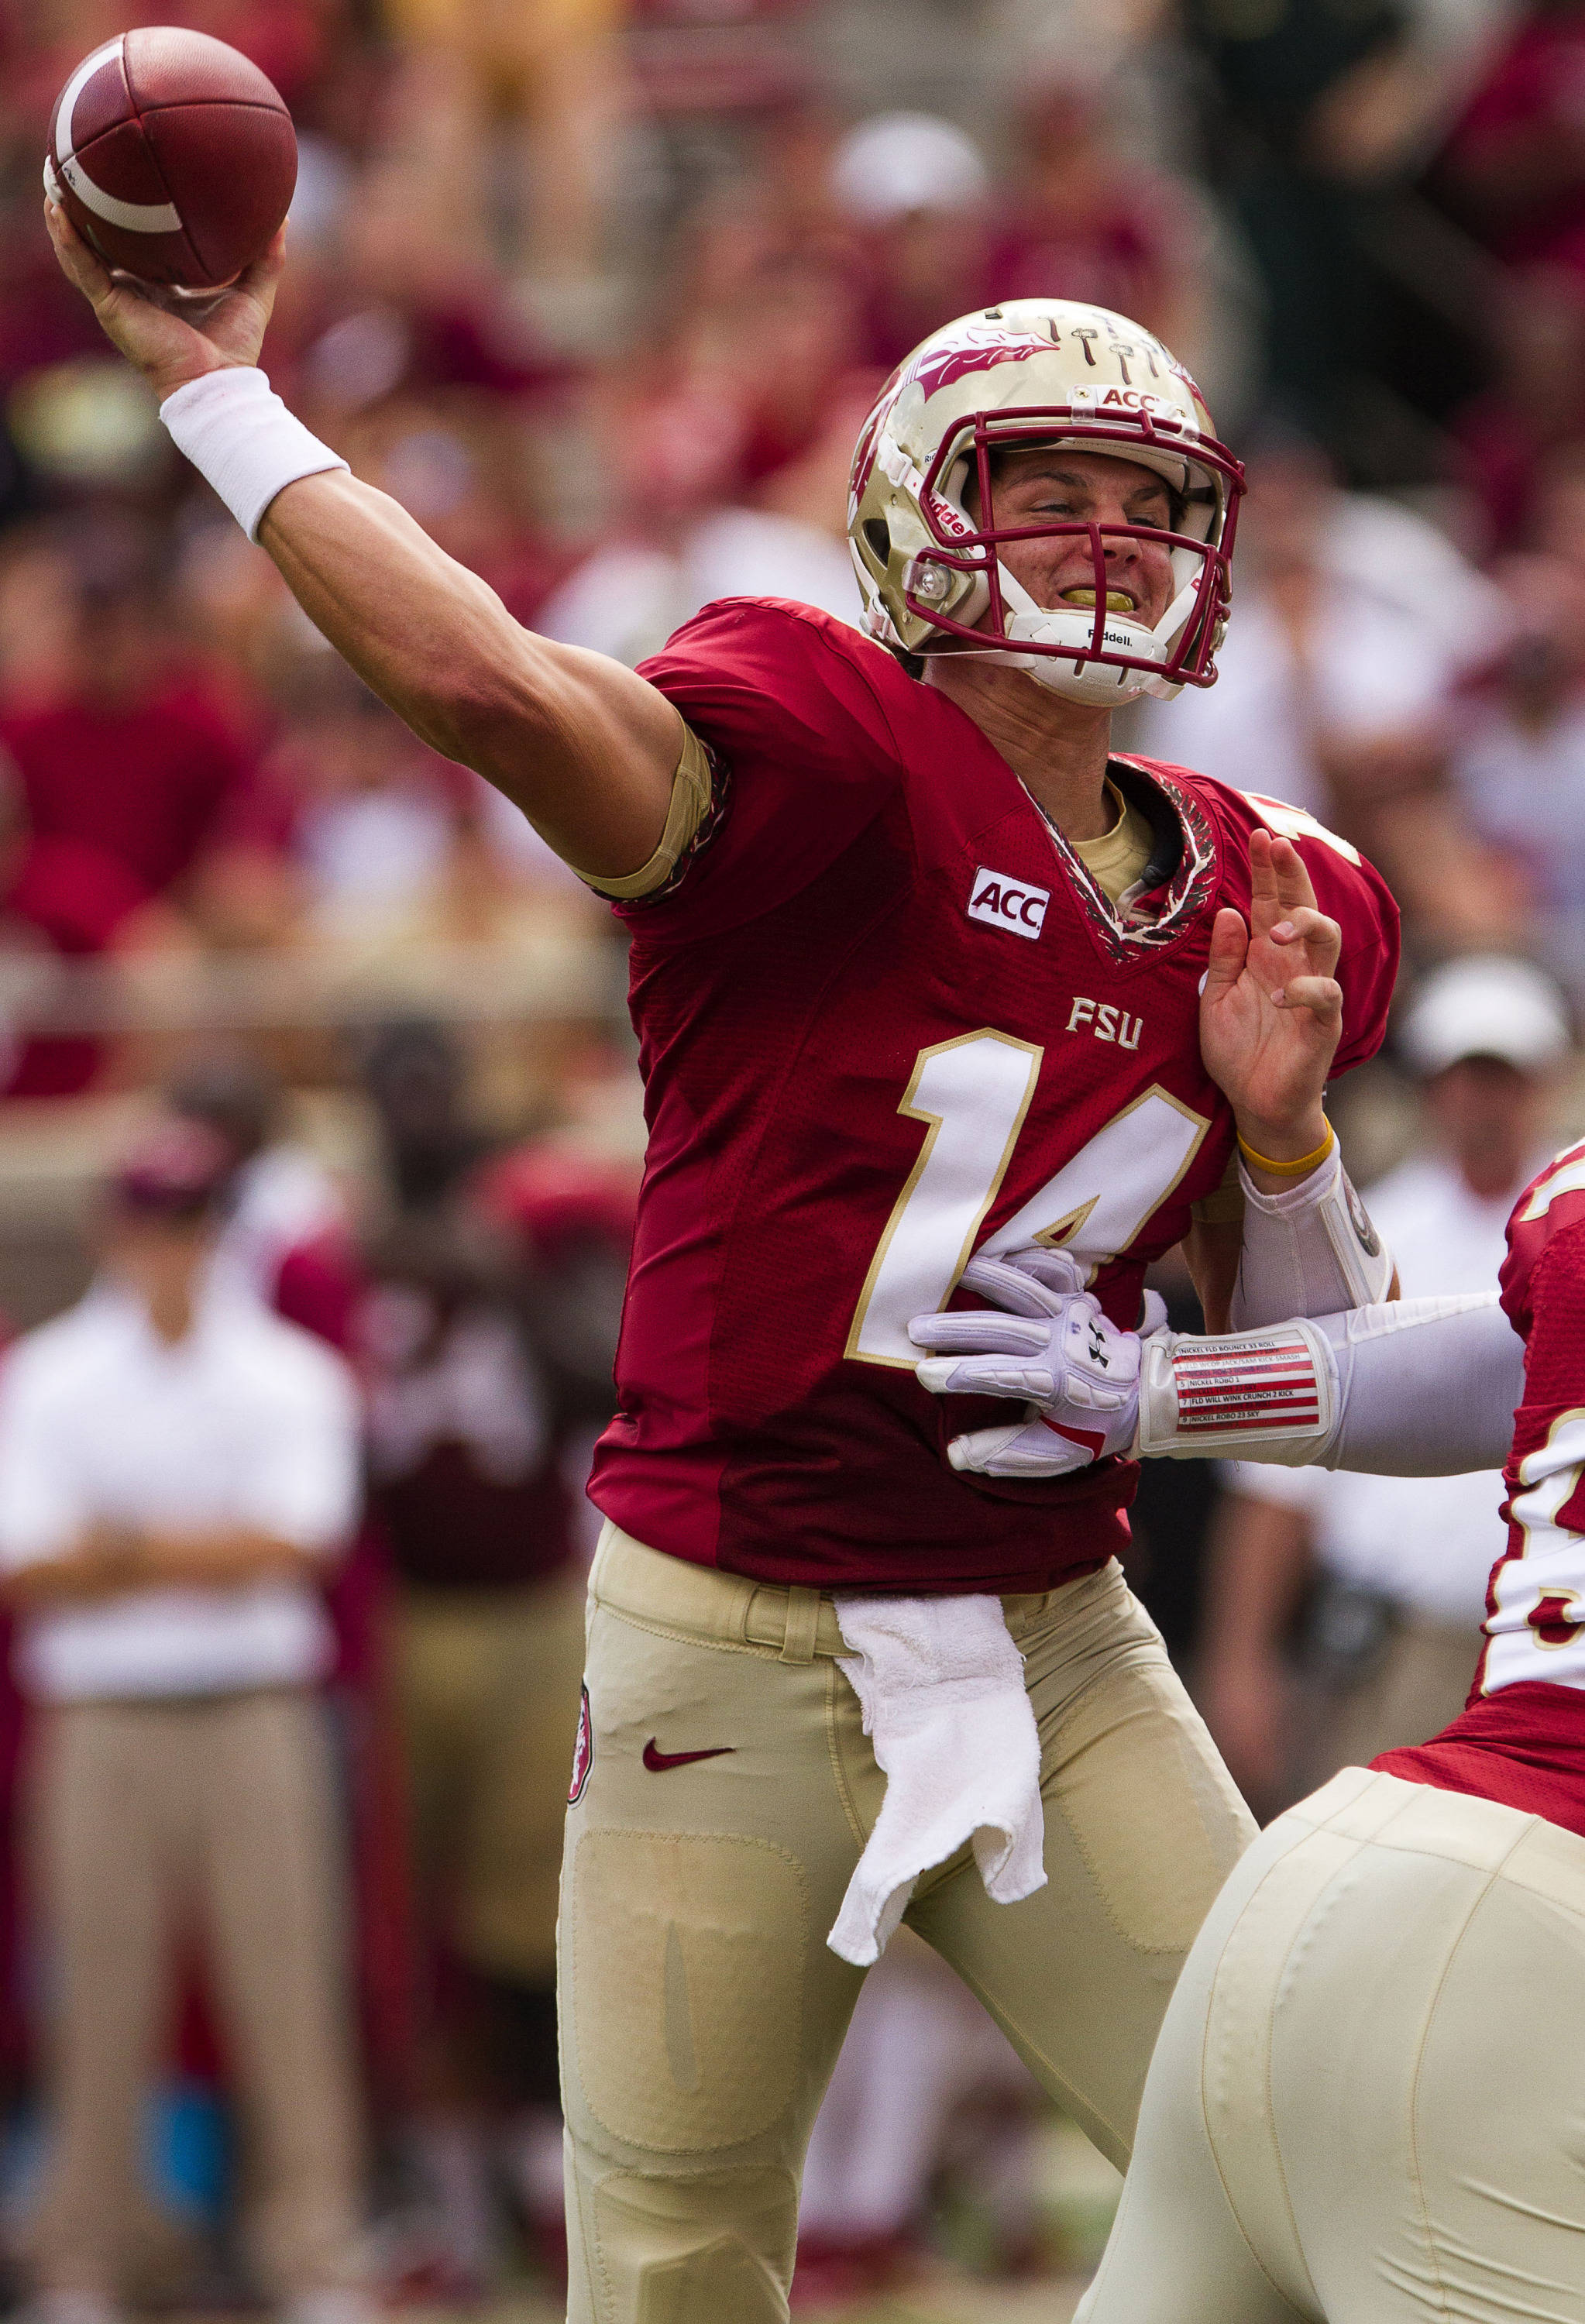 Jacob Coker (14) makes a pass during FSU Football's 63-0 shutout of Maryland on Saturday, October 5, 2013 in Tallahassee, Fla.